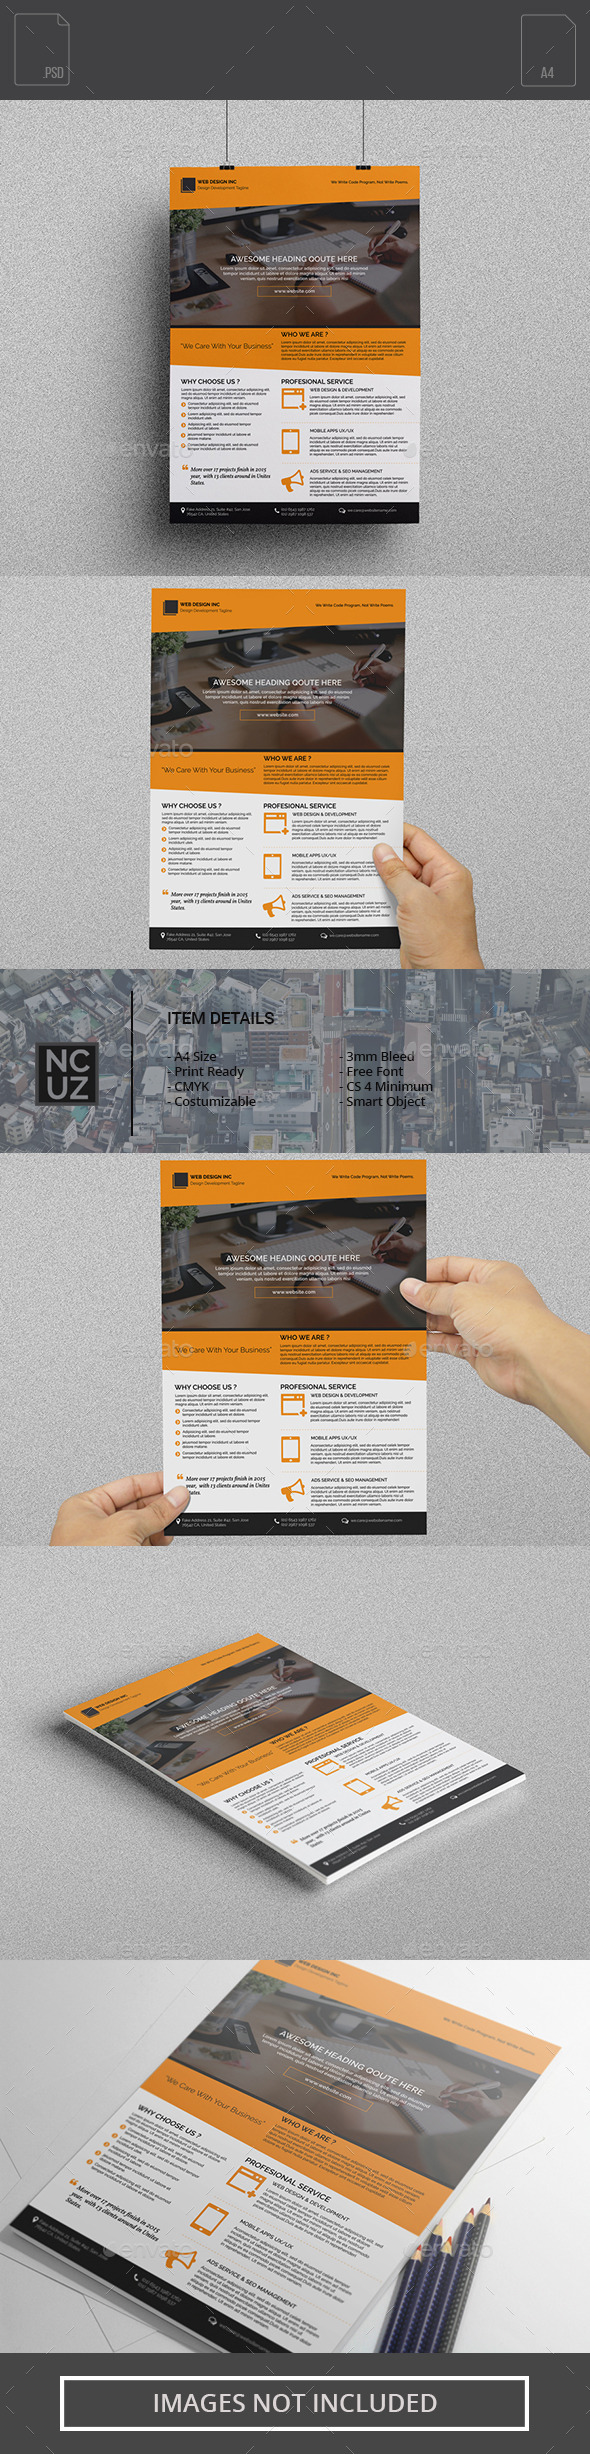 Flyer Web Design Company - Corporate Flyers